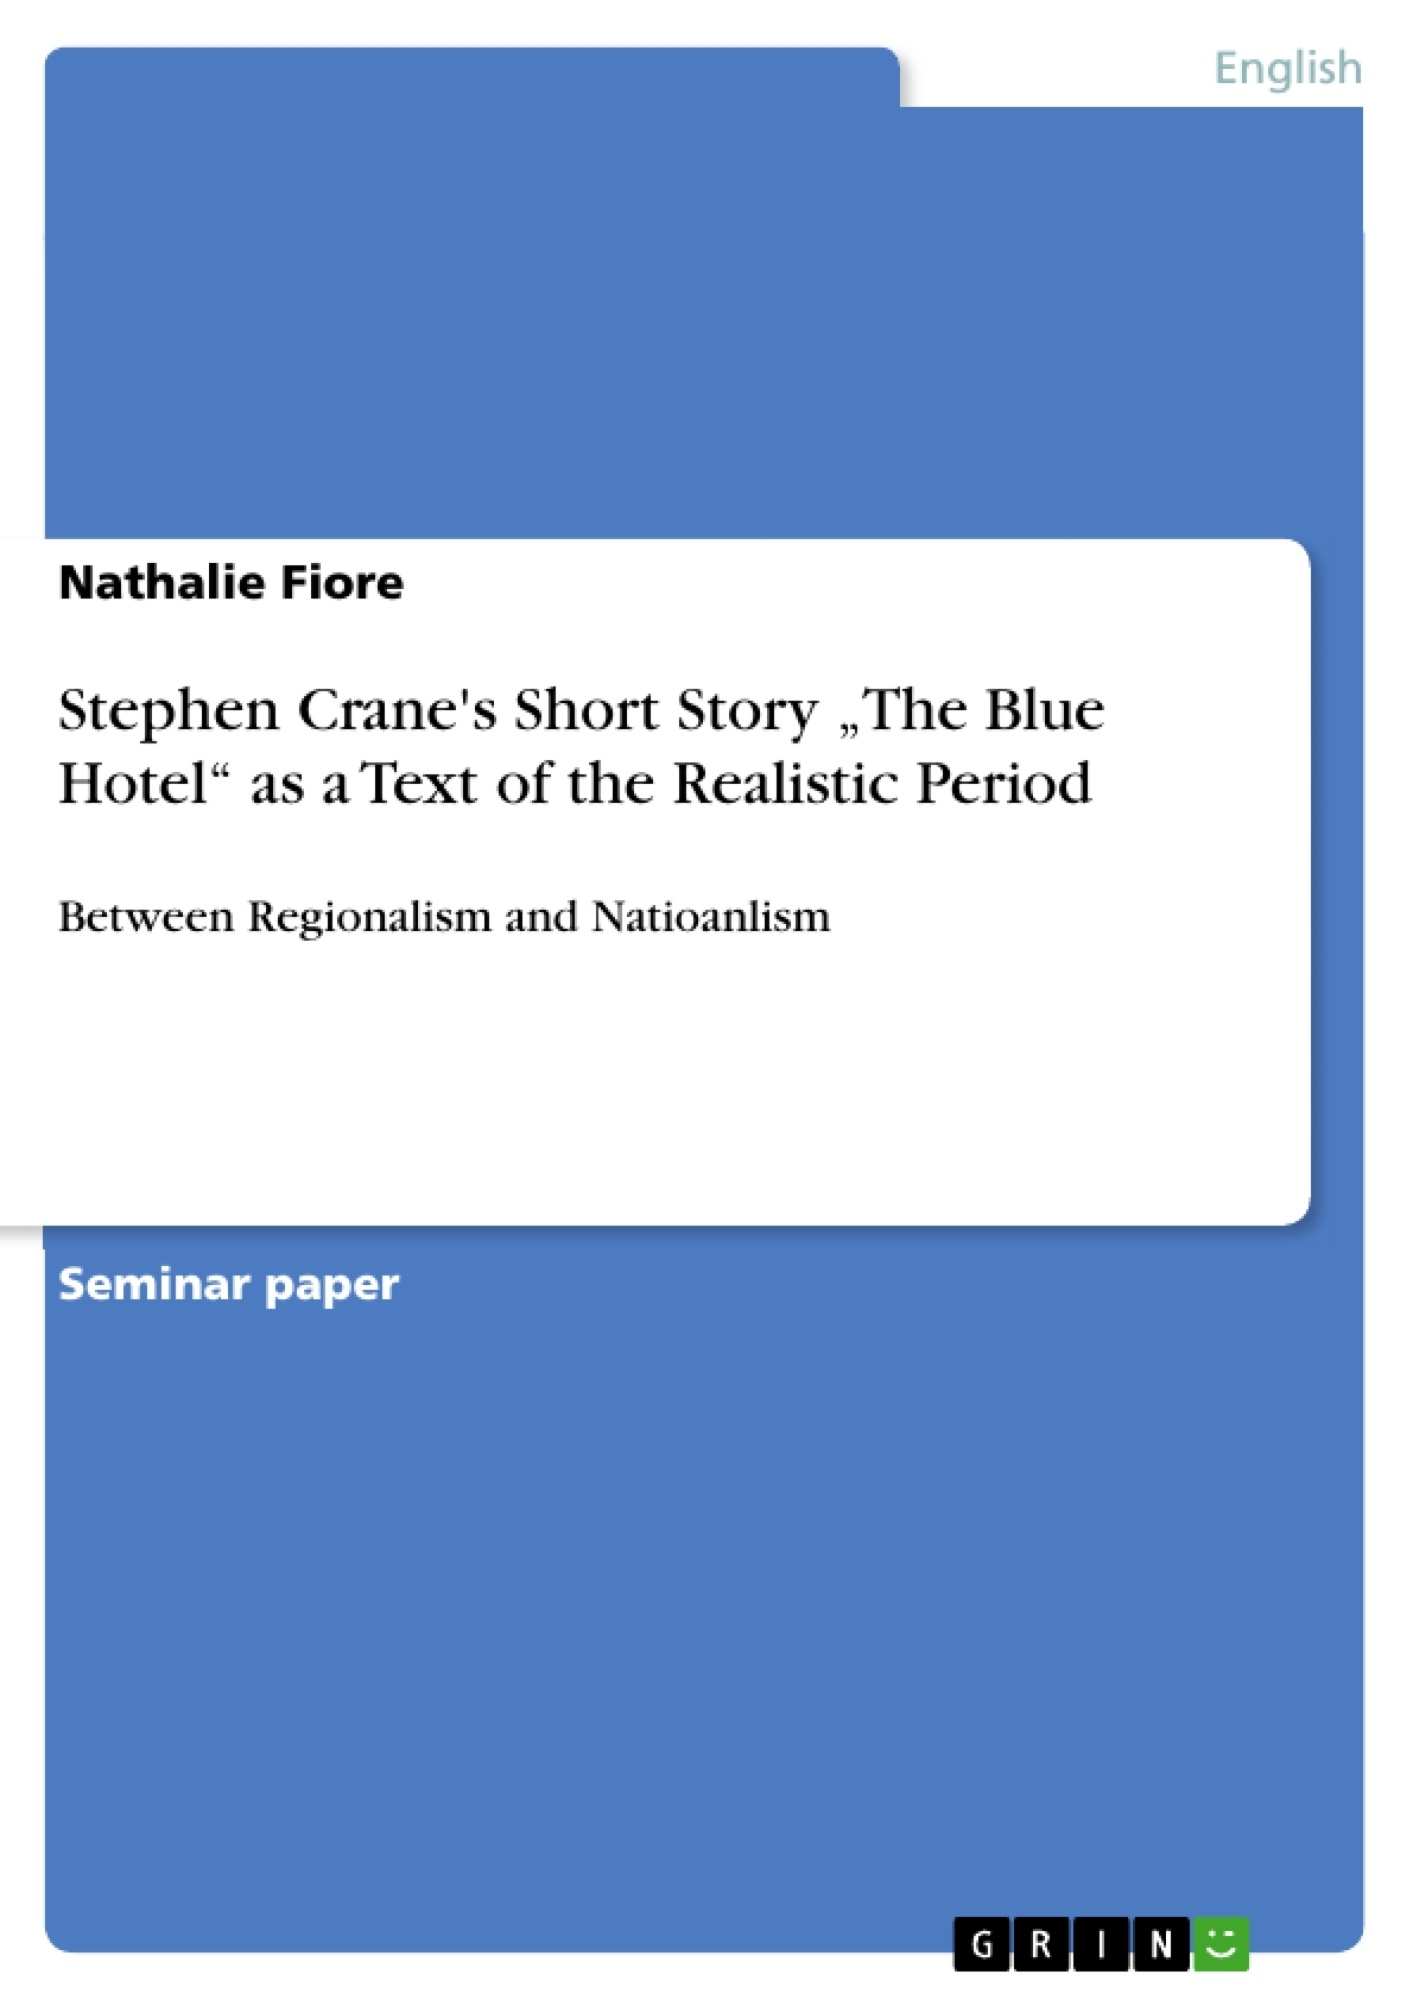 a literary analysis of the blue hotel by stephen crane Stephen crane is considered to be one of the most prominent literary naturalists in american literature naturalism was a movement in american literature during the latter half of the nineteenth century other notable american naturalist authors include frank norris, john steinbeck, edith wharton.